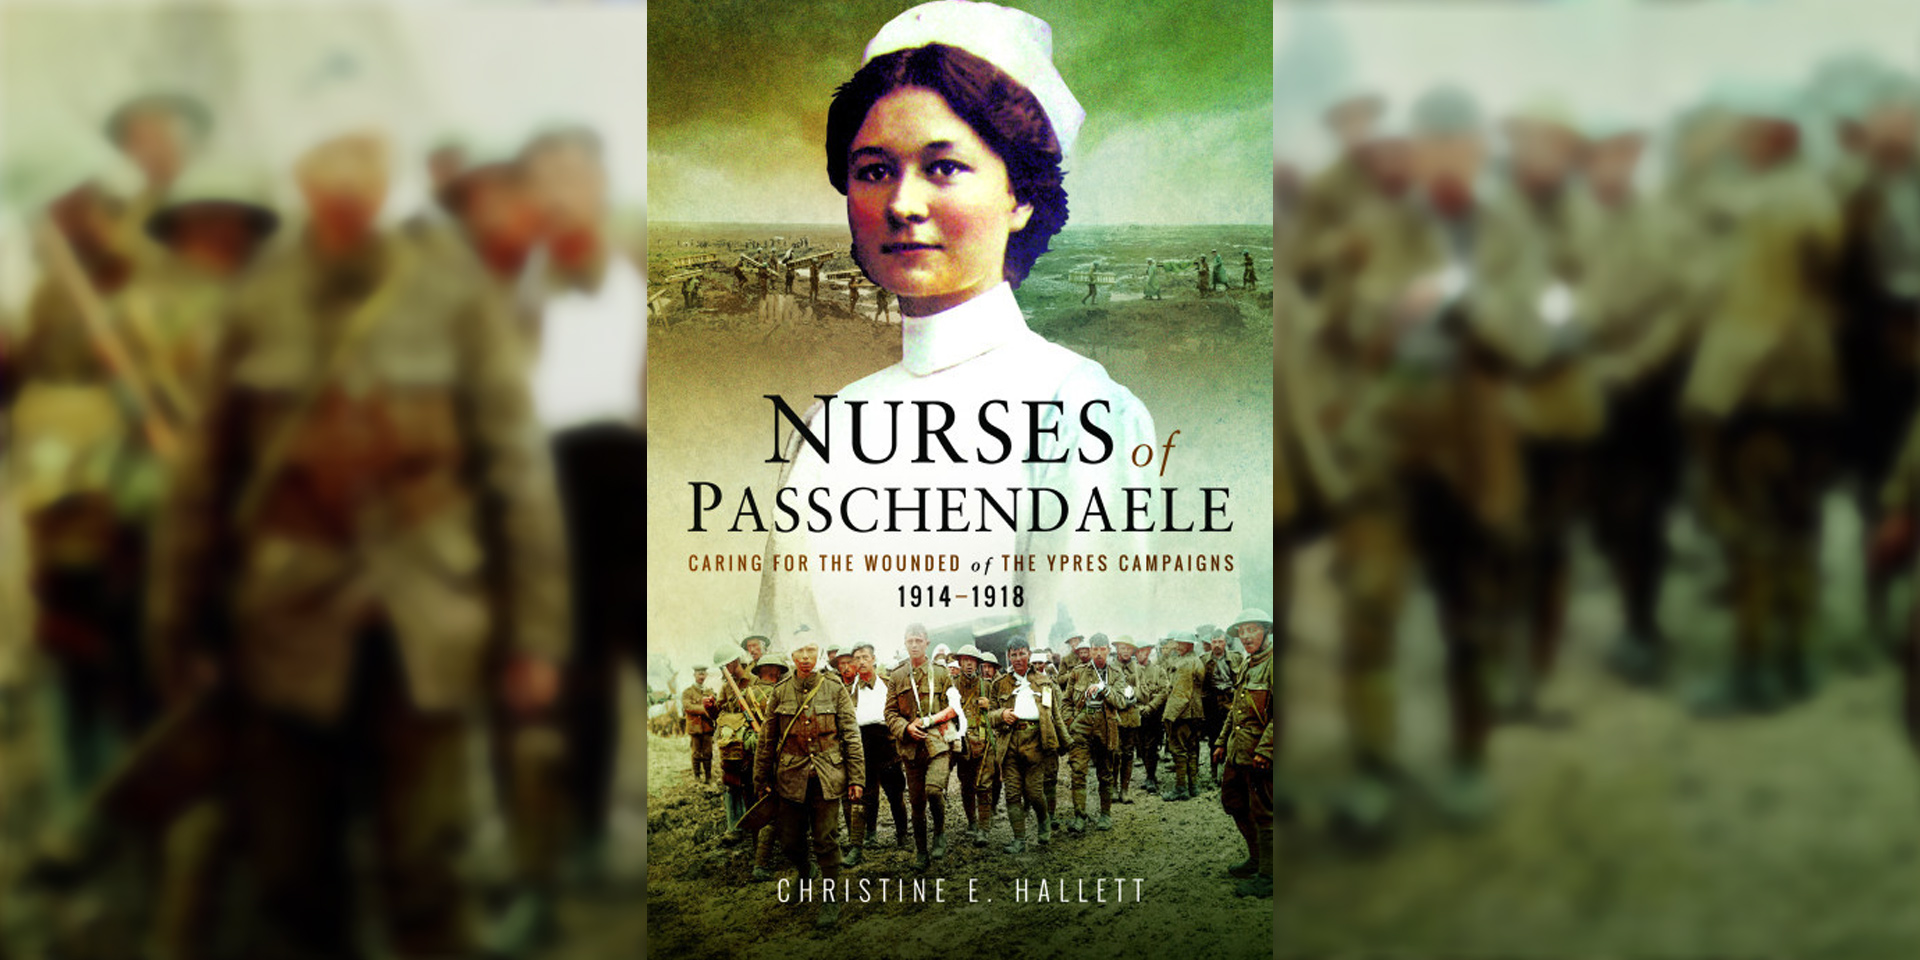 Nurses of Passchendaele